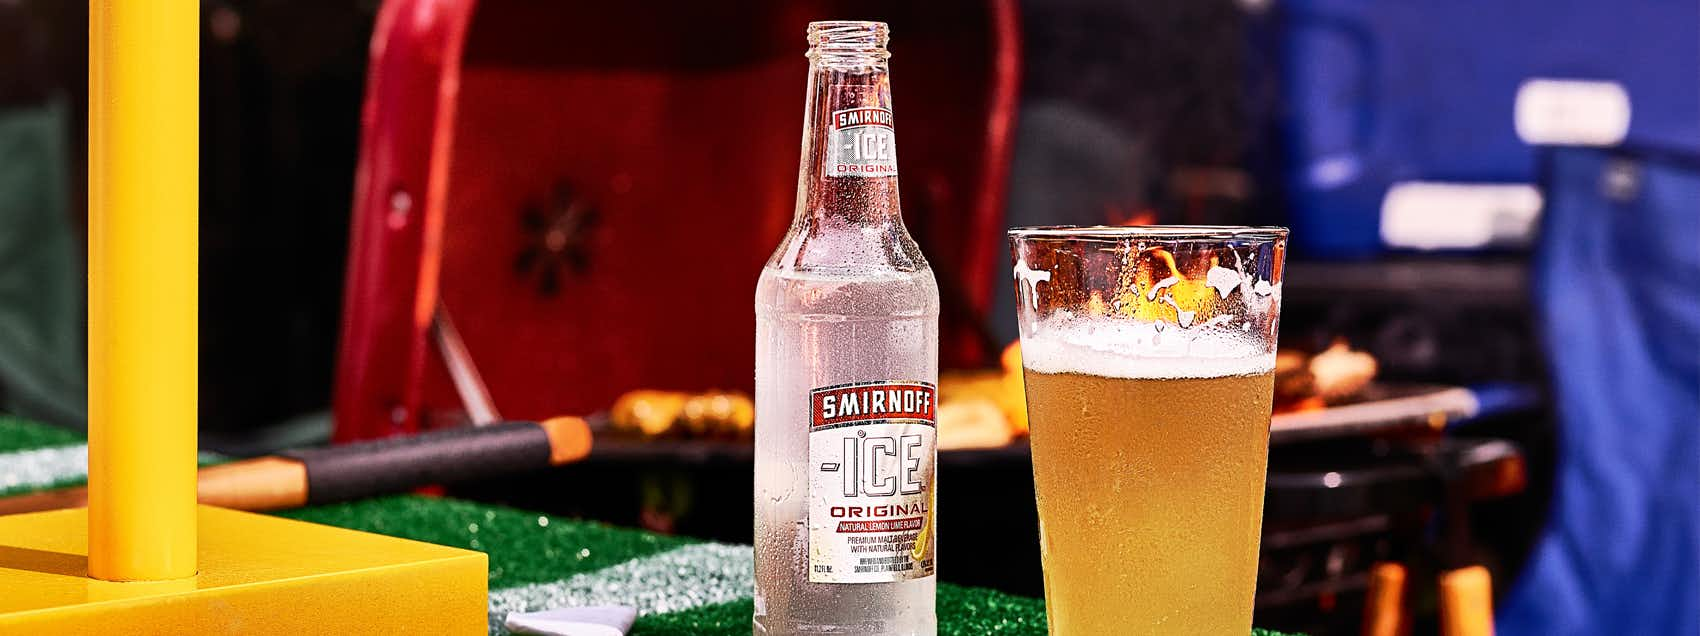 Smirnoff Ice Shandy